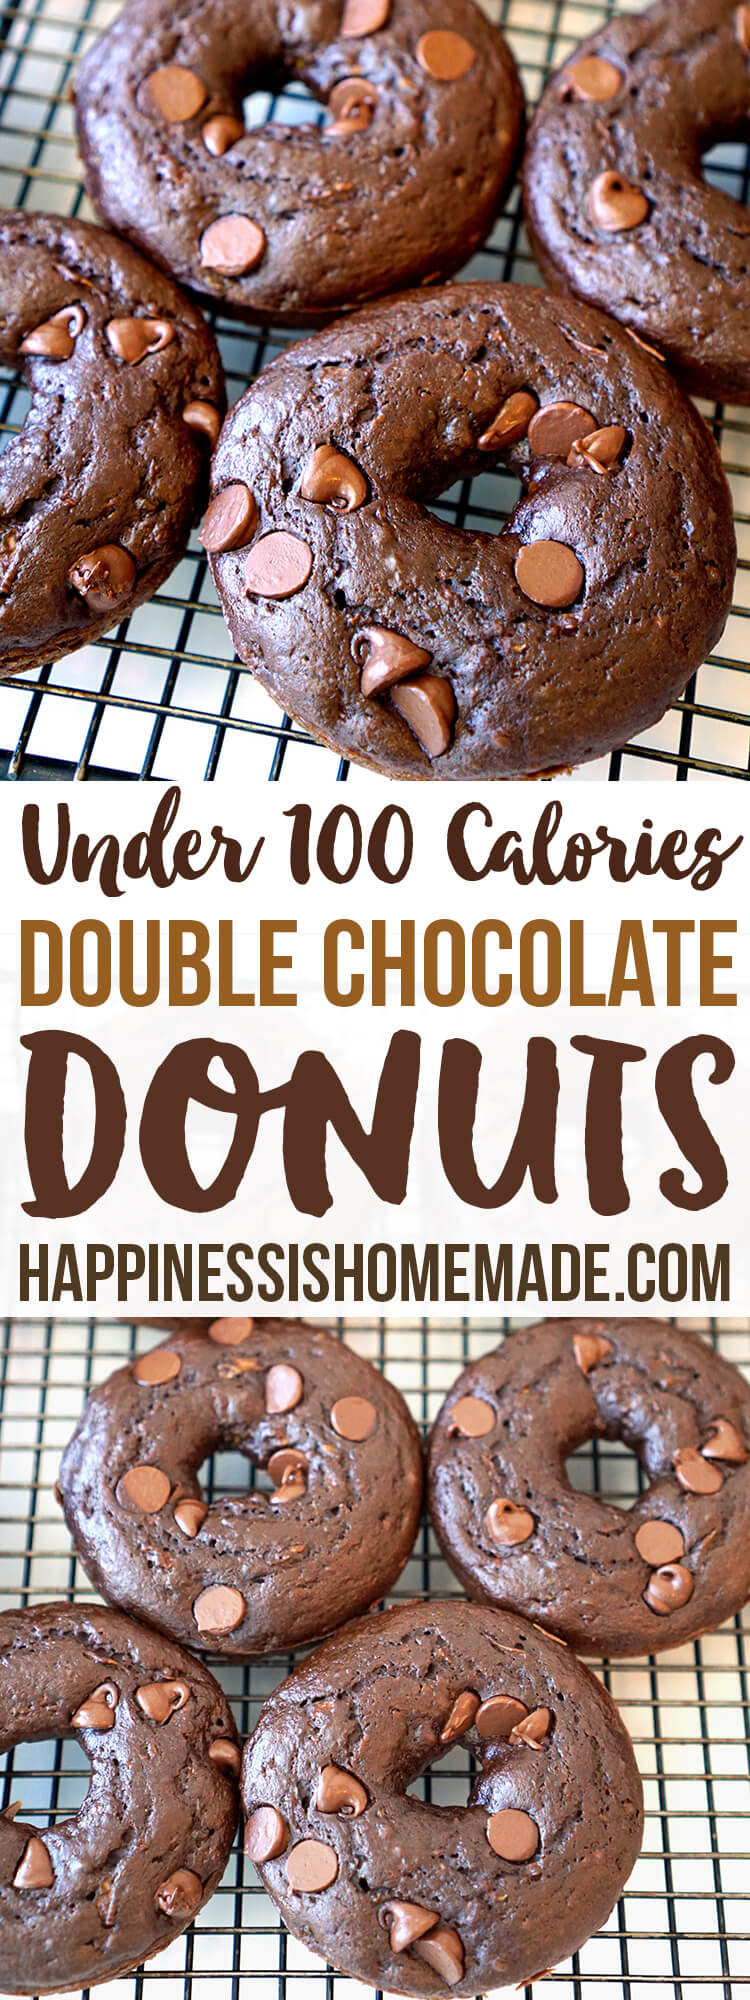 Under 100 Calories - Healthy Double Chocolate Zucchini Cake Donuts - These better-for-you double chocolate donuts are under 100 calories each! A moist and rich chocolaty indulgence that won't blow your diet!